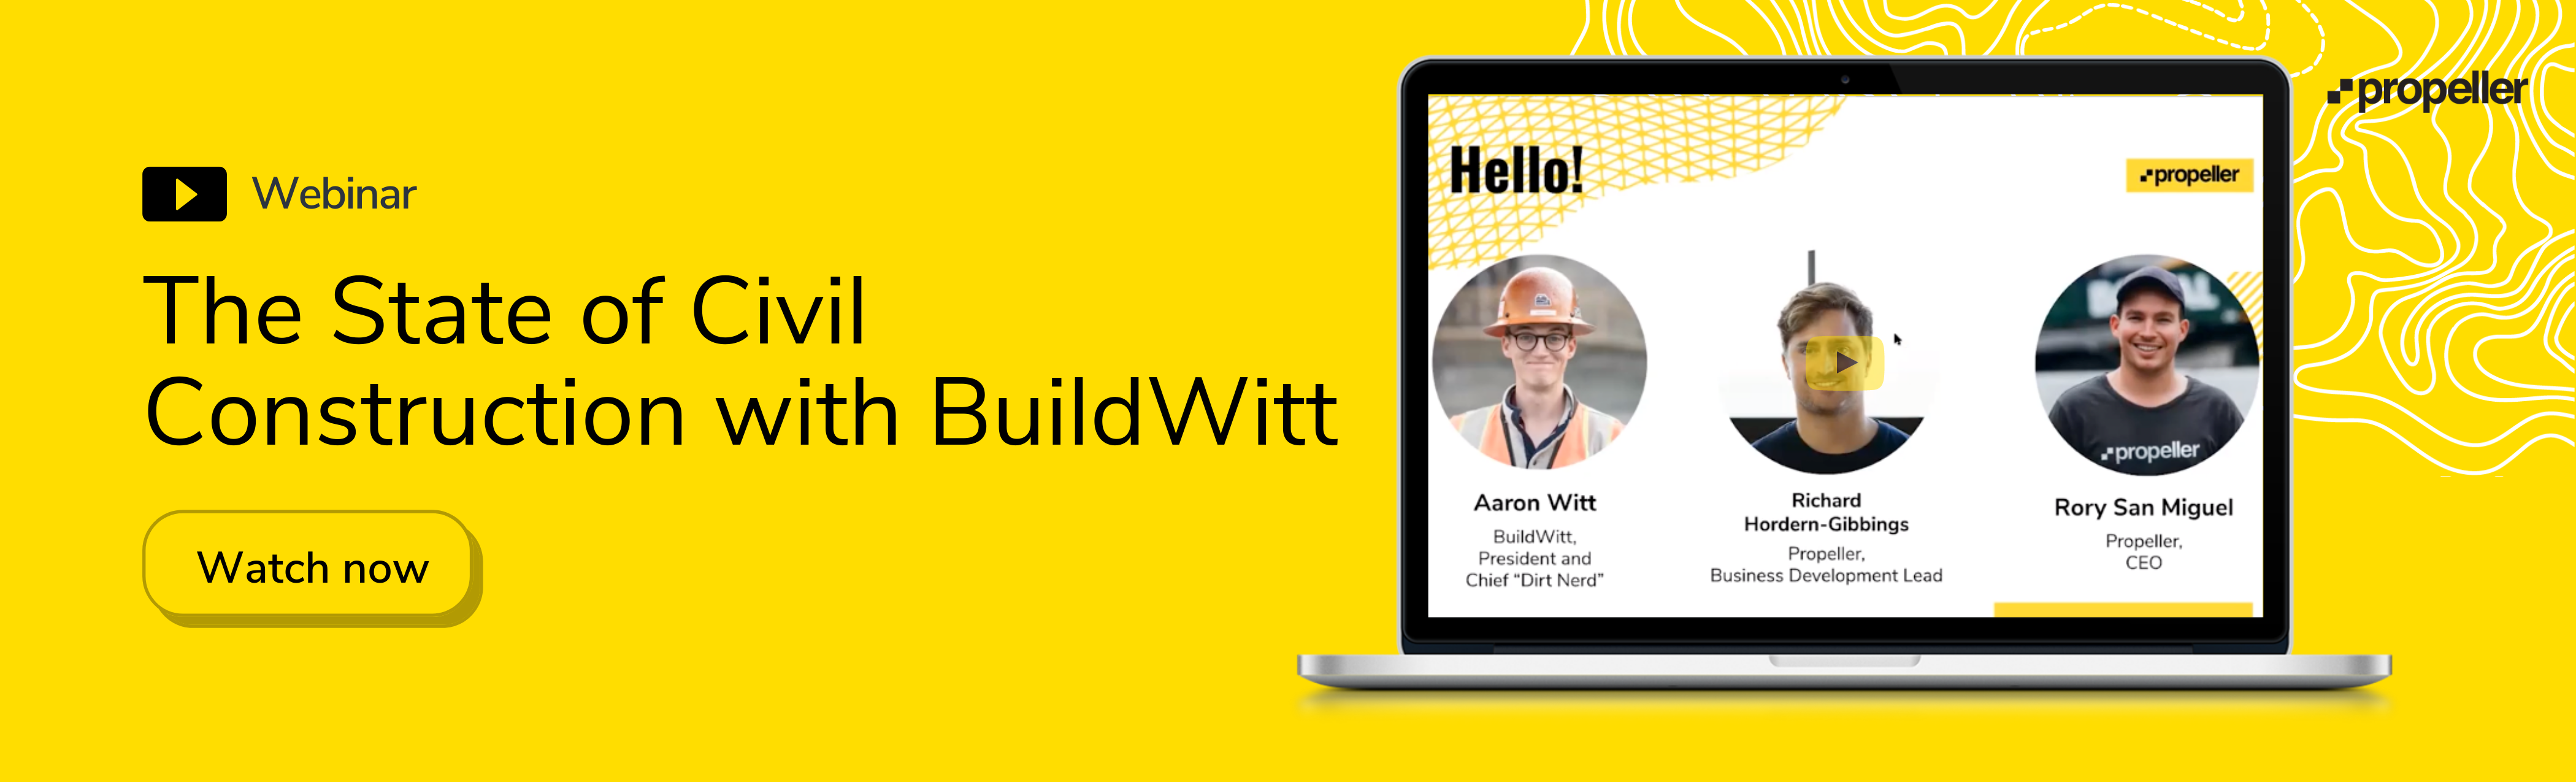 The state of civil construction with buildwitt